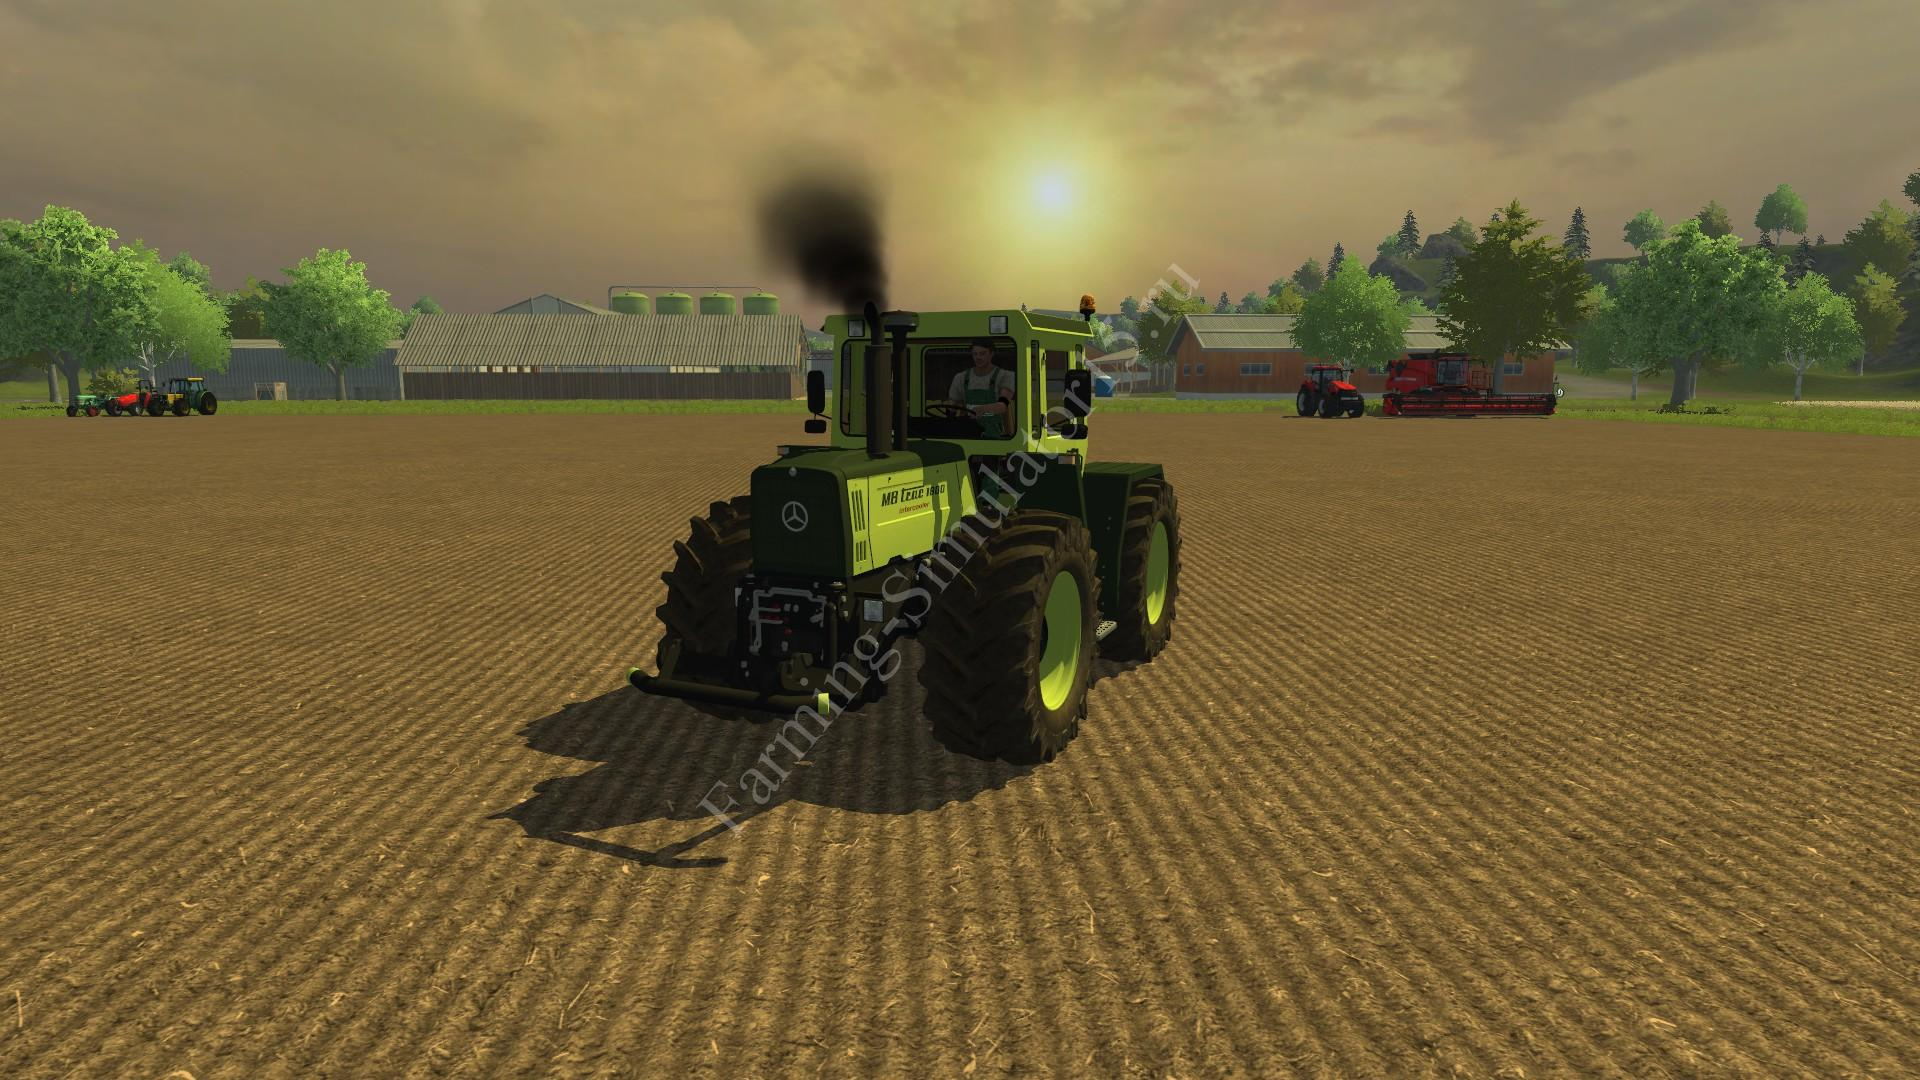 Мод трактора MB Trac 1800 Intercooler v 2.0 Farming Simulator 2013, Farming Simulator 13